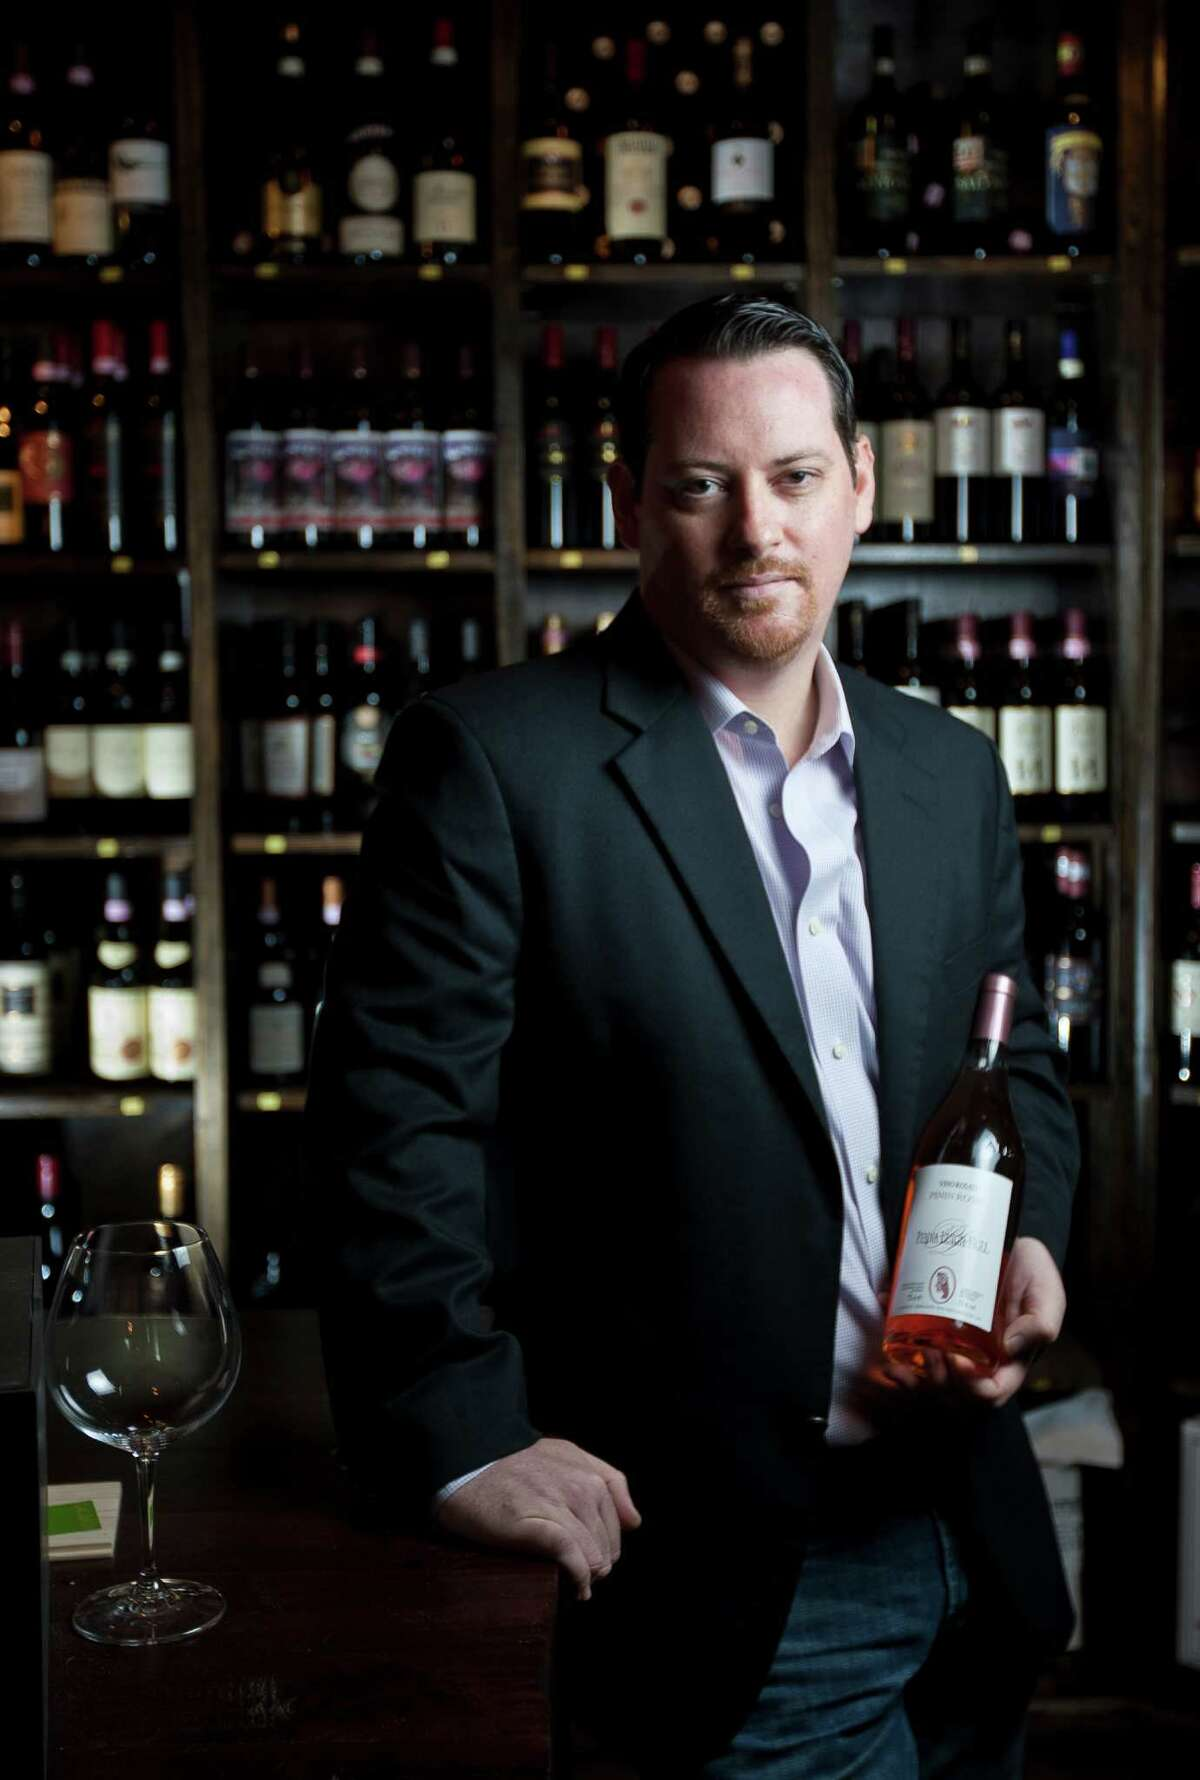 Nathan Smith is the manager and wine director for Dolce Vita Pizzeria and Enoteca, photographed, Wednesday, July 3, 2013, in Houston. ( Nick de la Torre / Houston Chronicle )